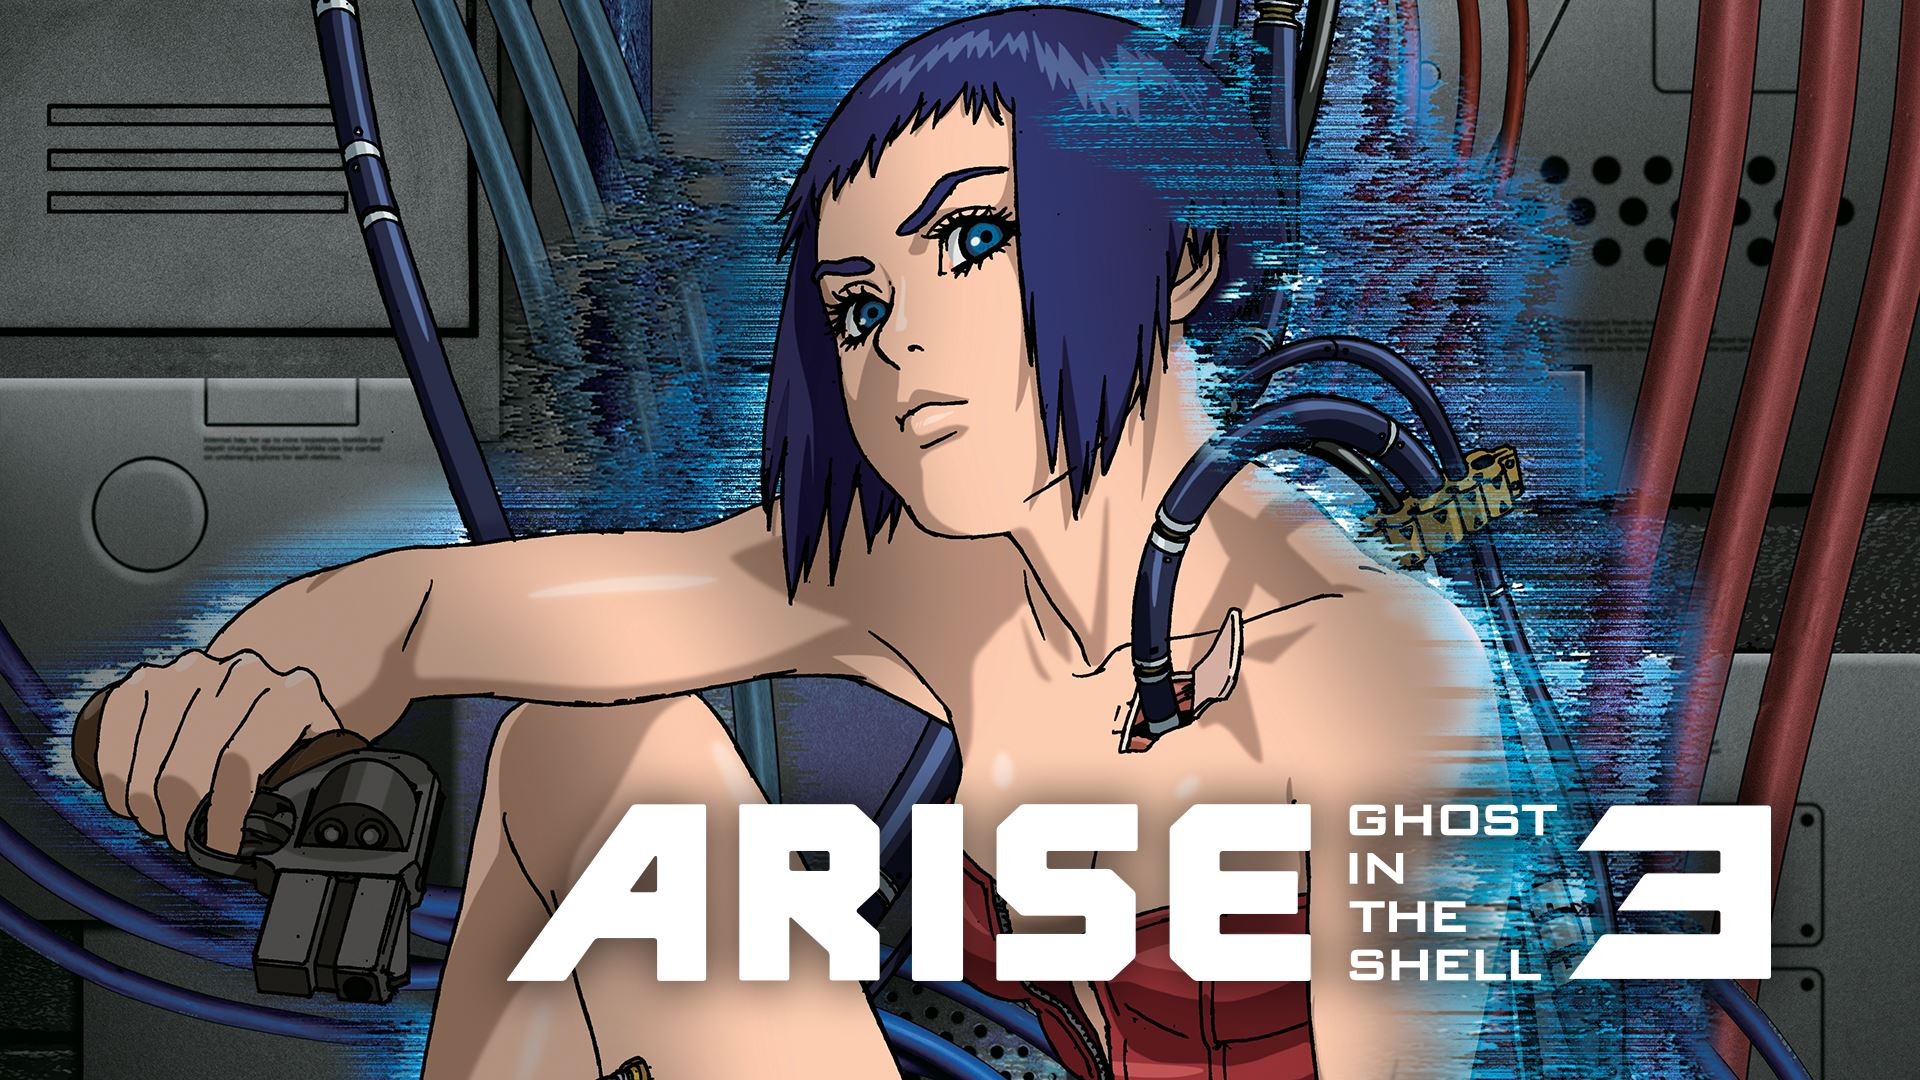 Xem phim Ghost in the Shell: Arise - Border:3 Ghost Tears - Koukaku Kidoutai Arise: Ghost in the Shell - Border:3 Ghost Tears Vietsub